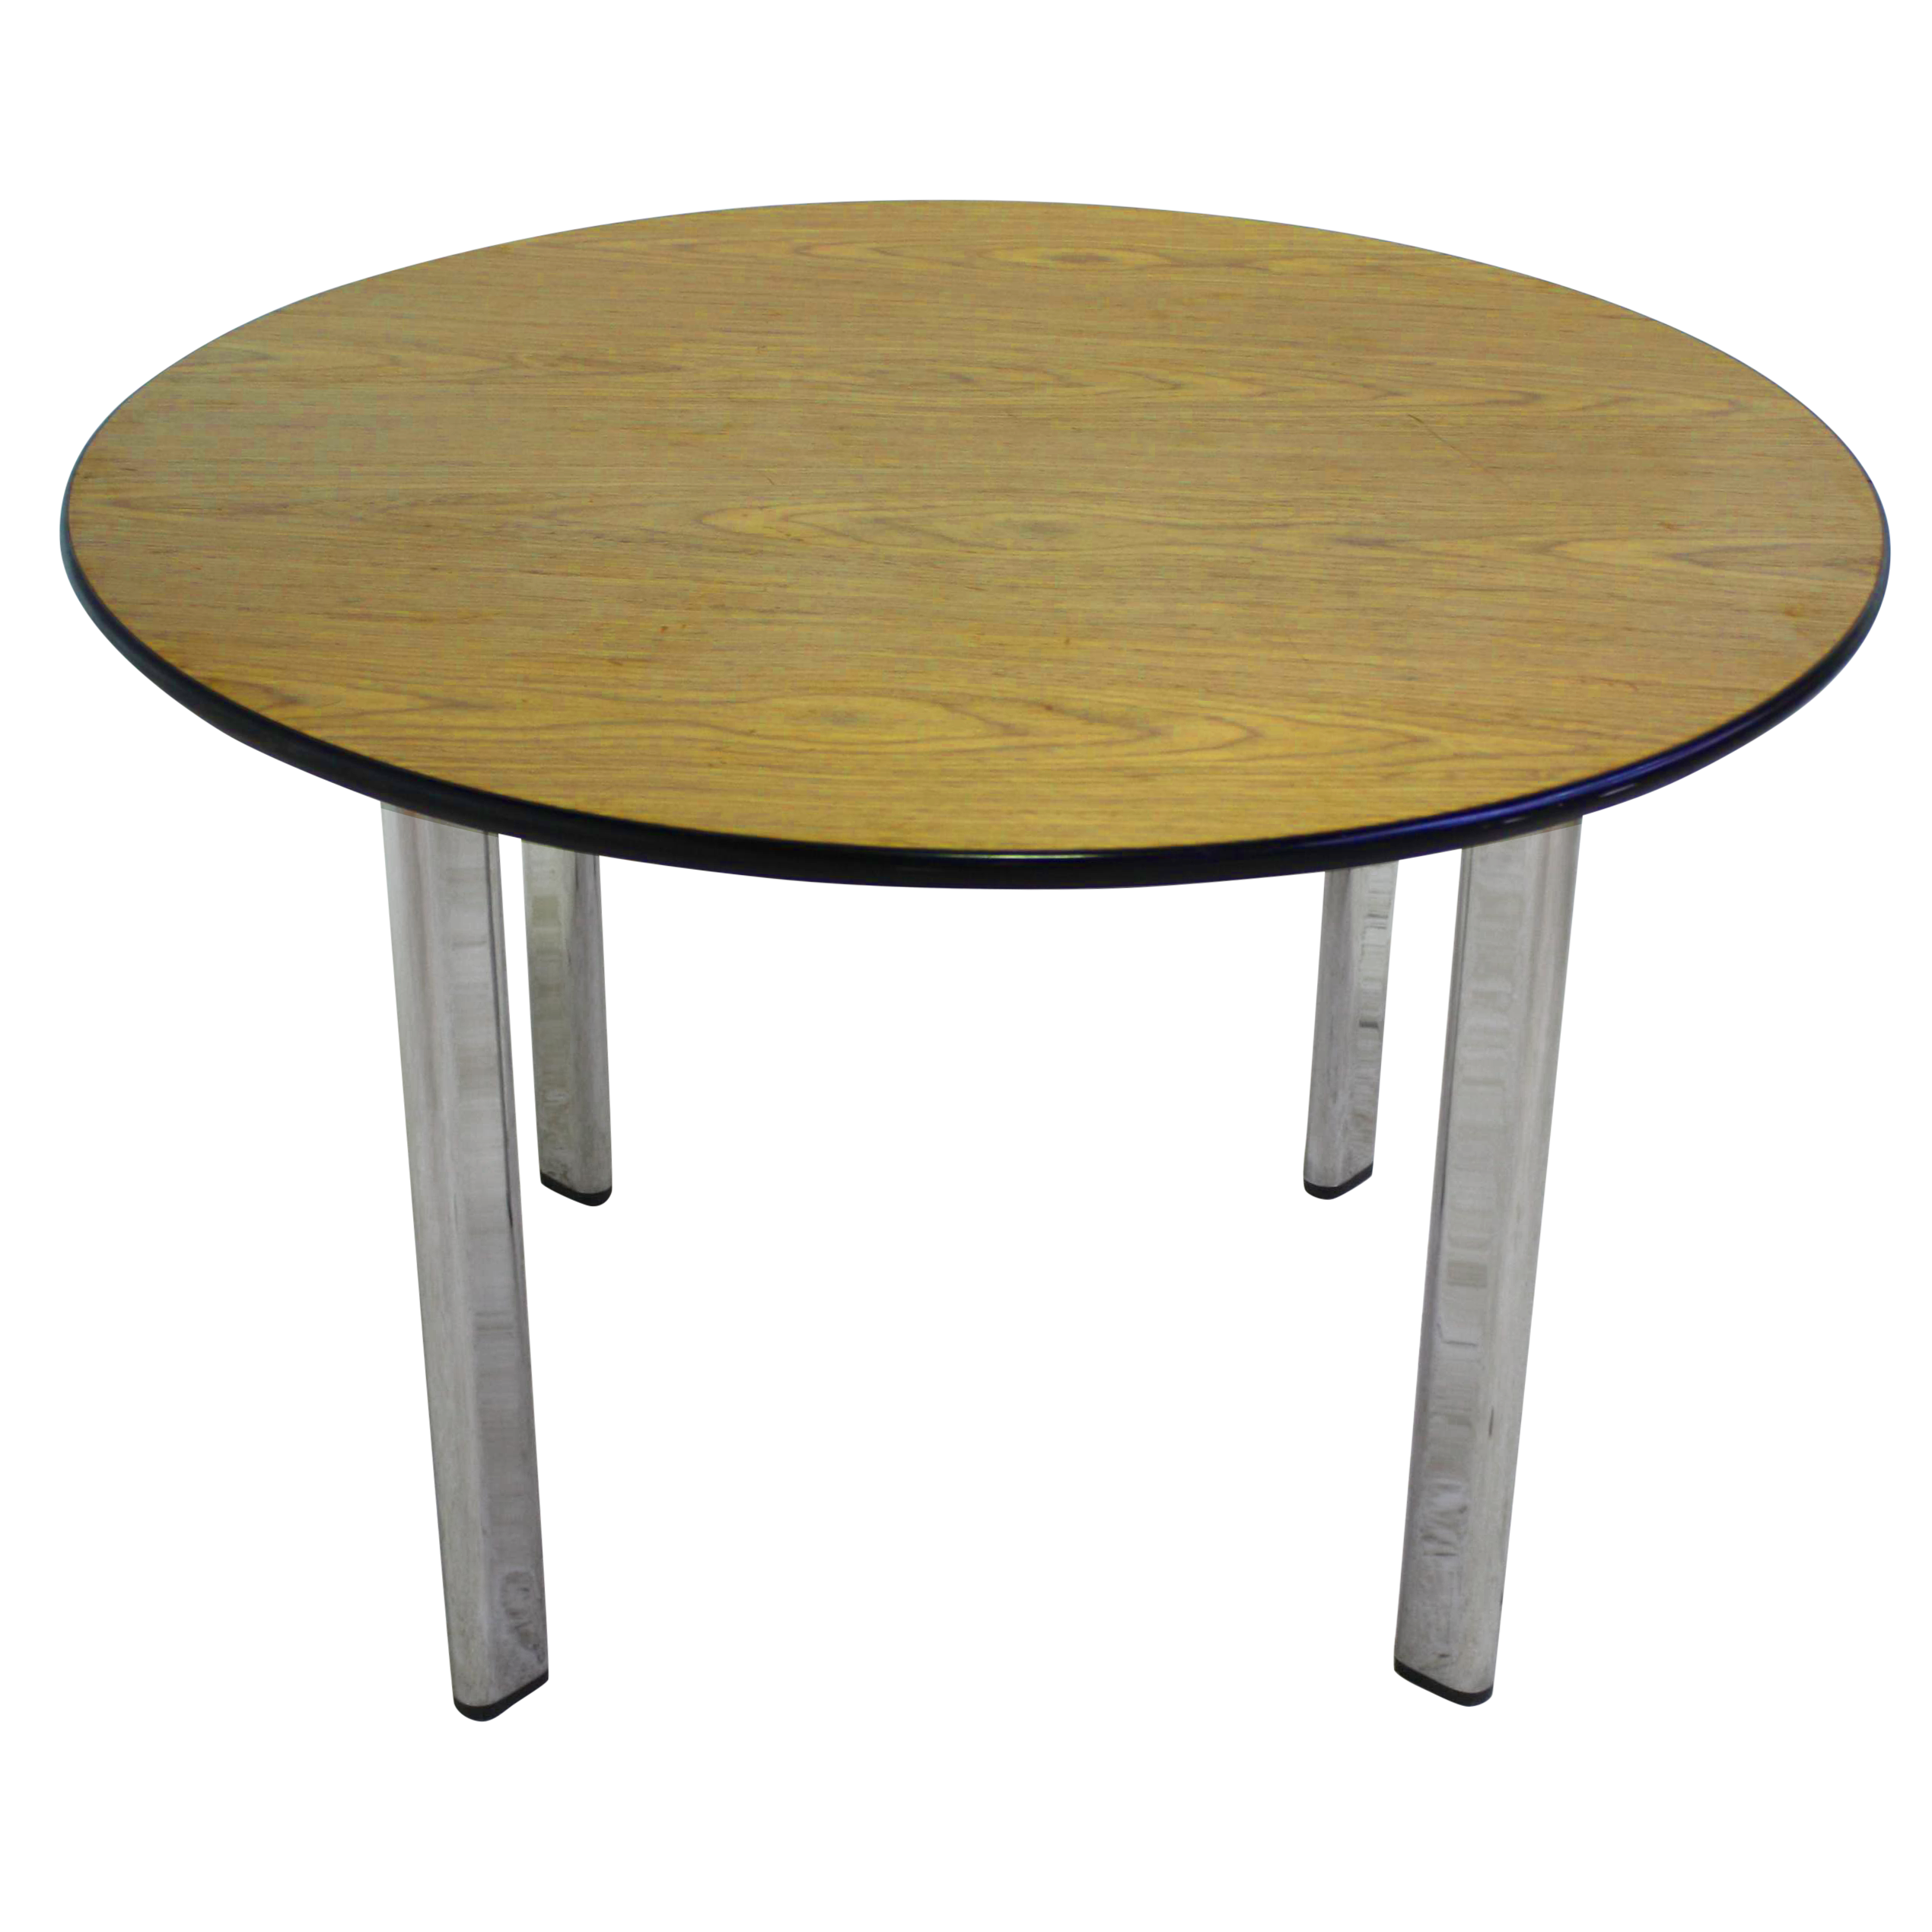 Joseph d 39 urso knoll stackable table 20 avail chairish for Small stackable coffee tables